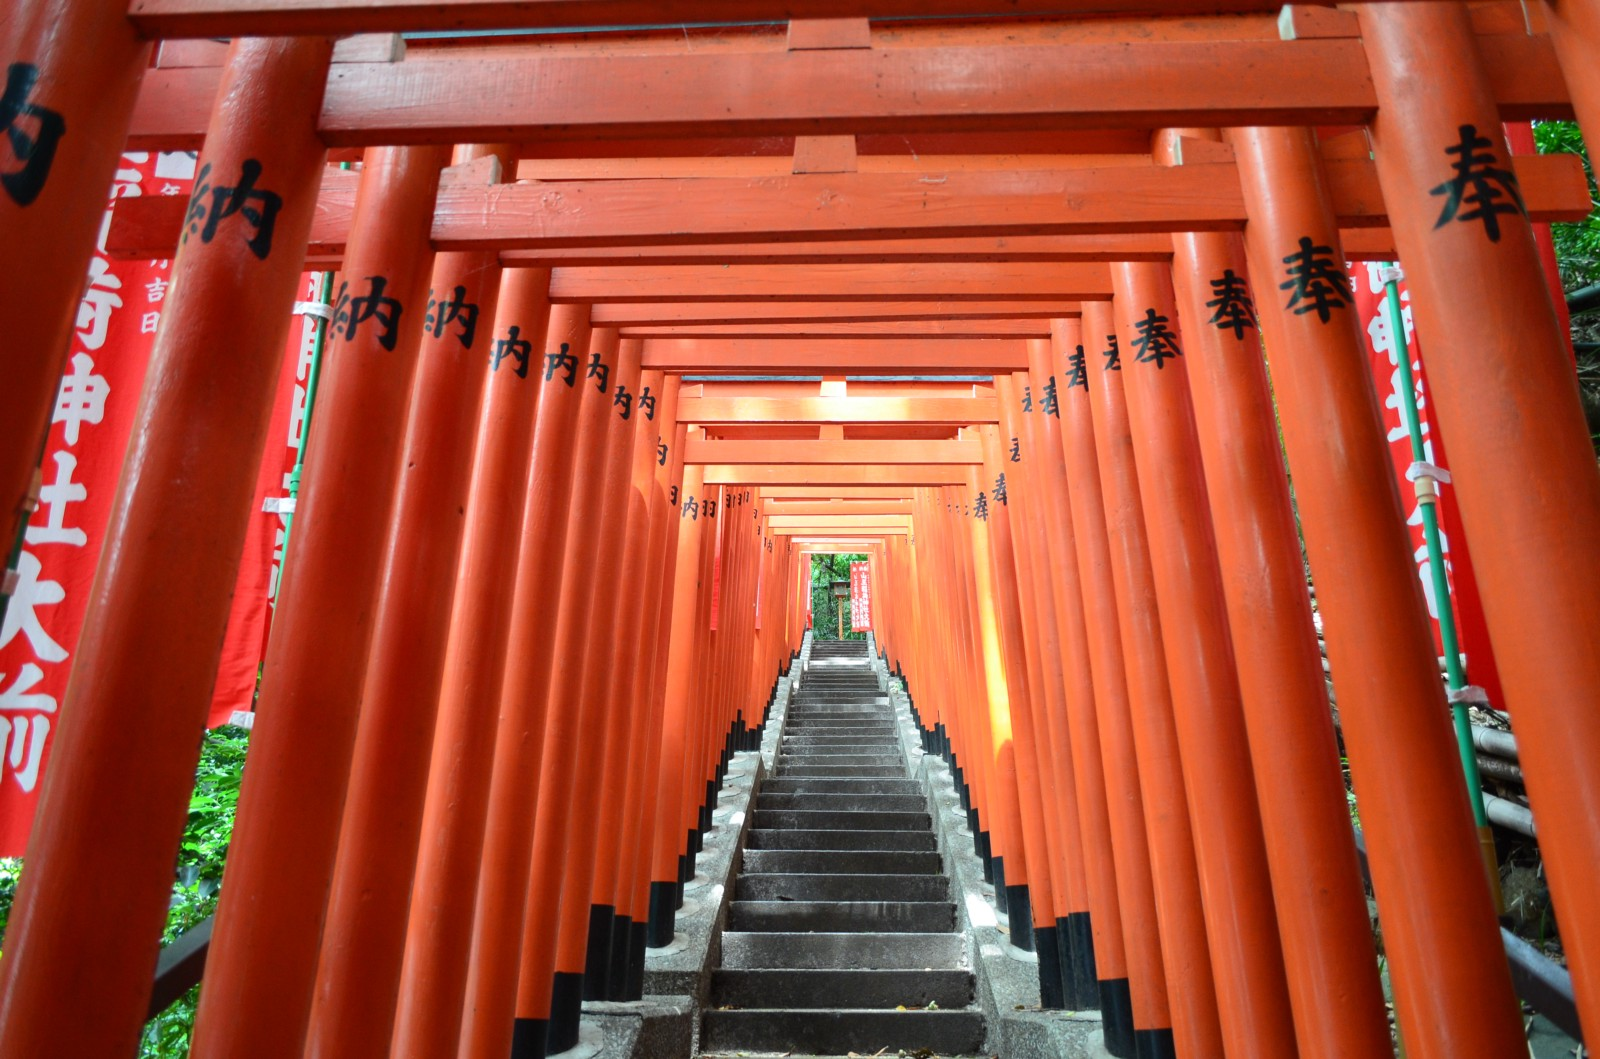 The stairs with red torii gates tunnel at Hie Shrine